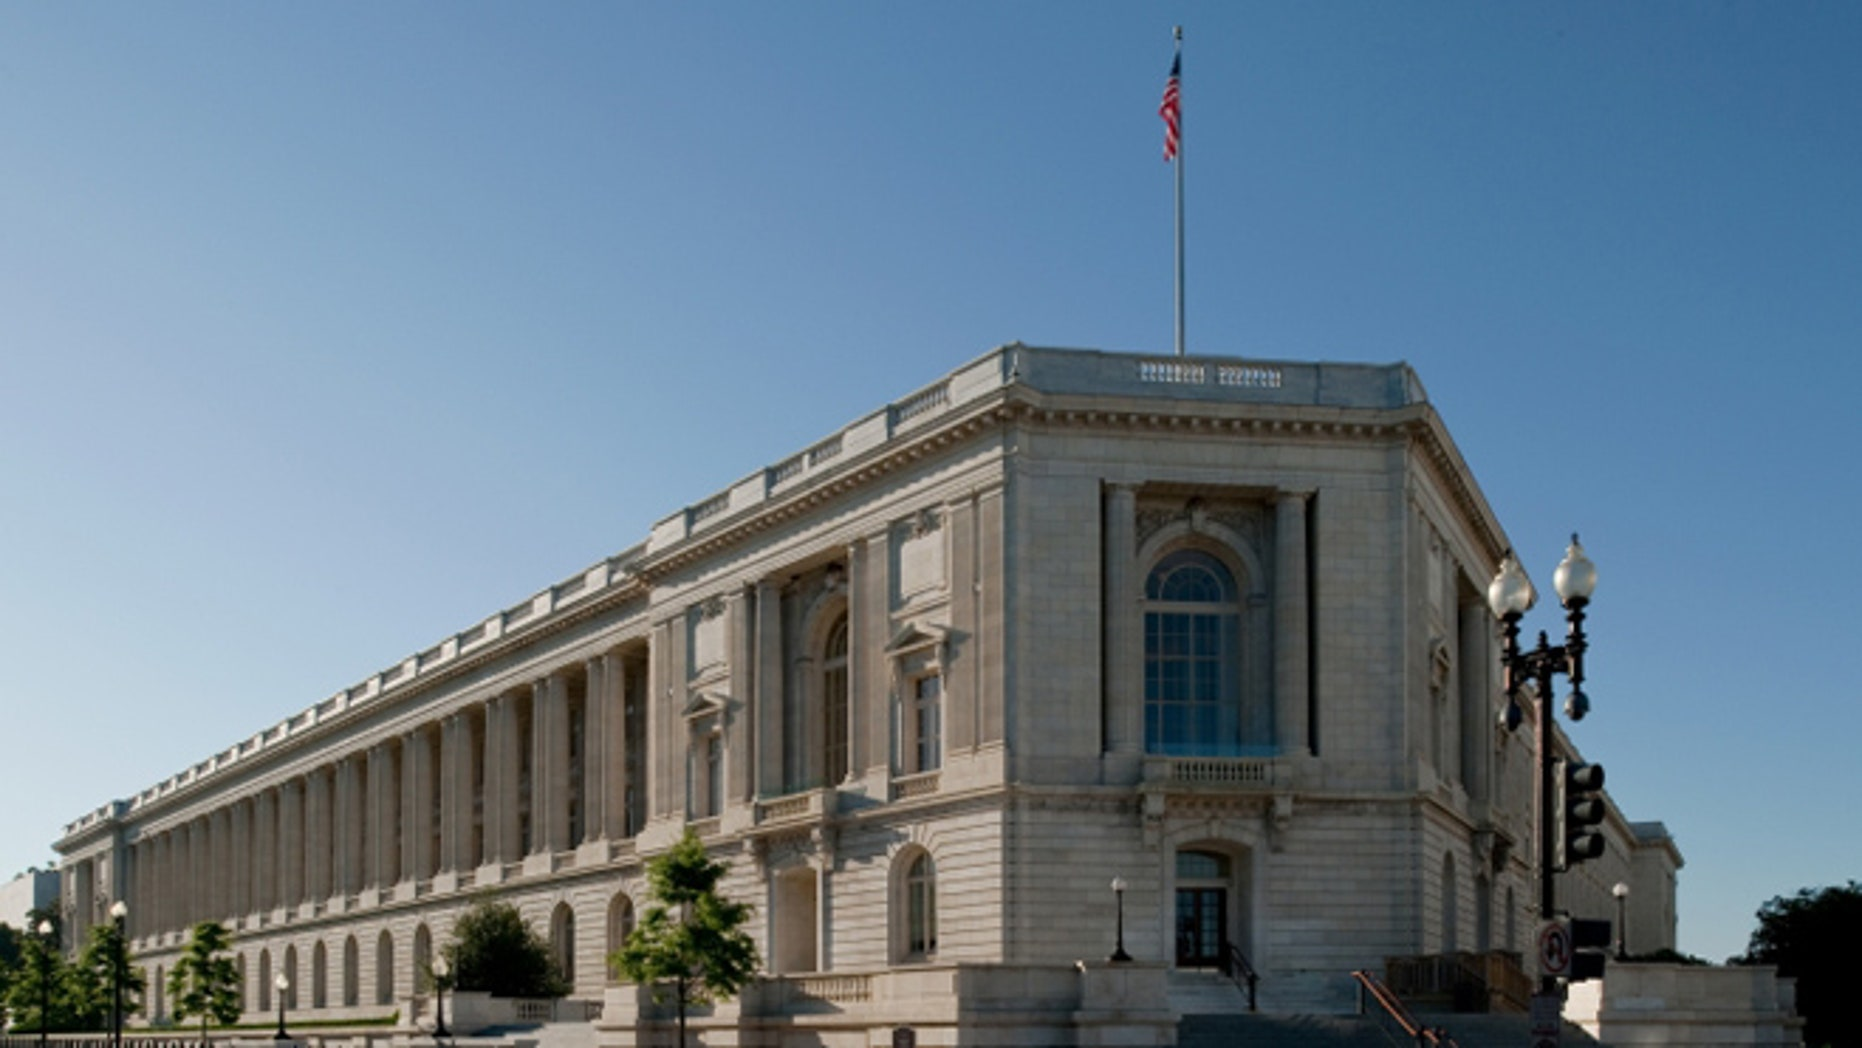 FILE: UNDATE: The Cannon House Office Building, on Capitol Hill. Washington, D.C.